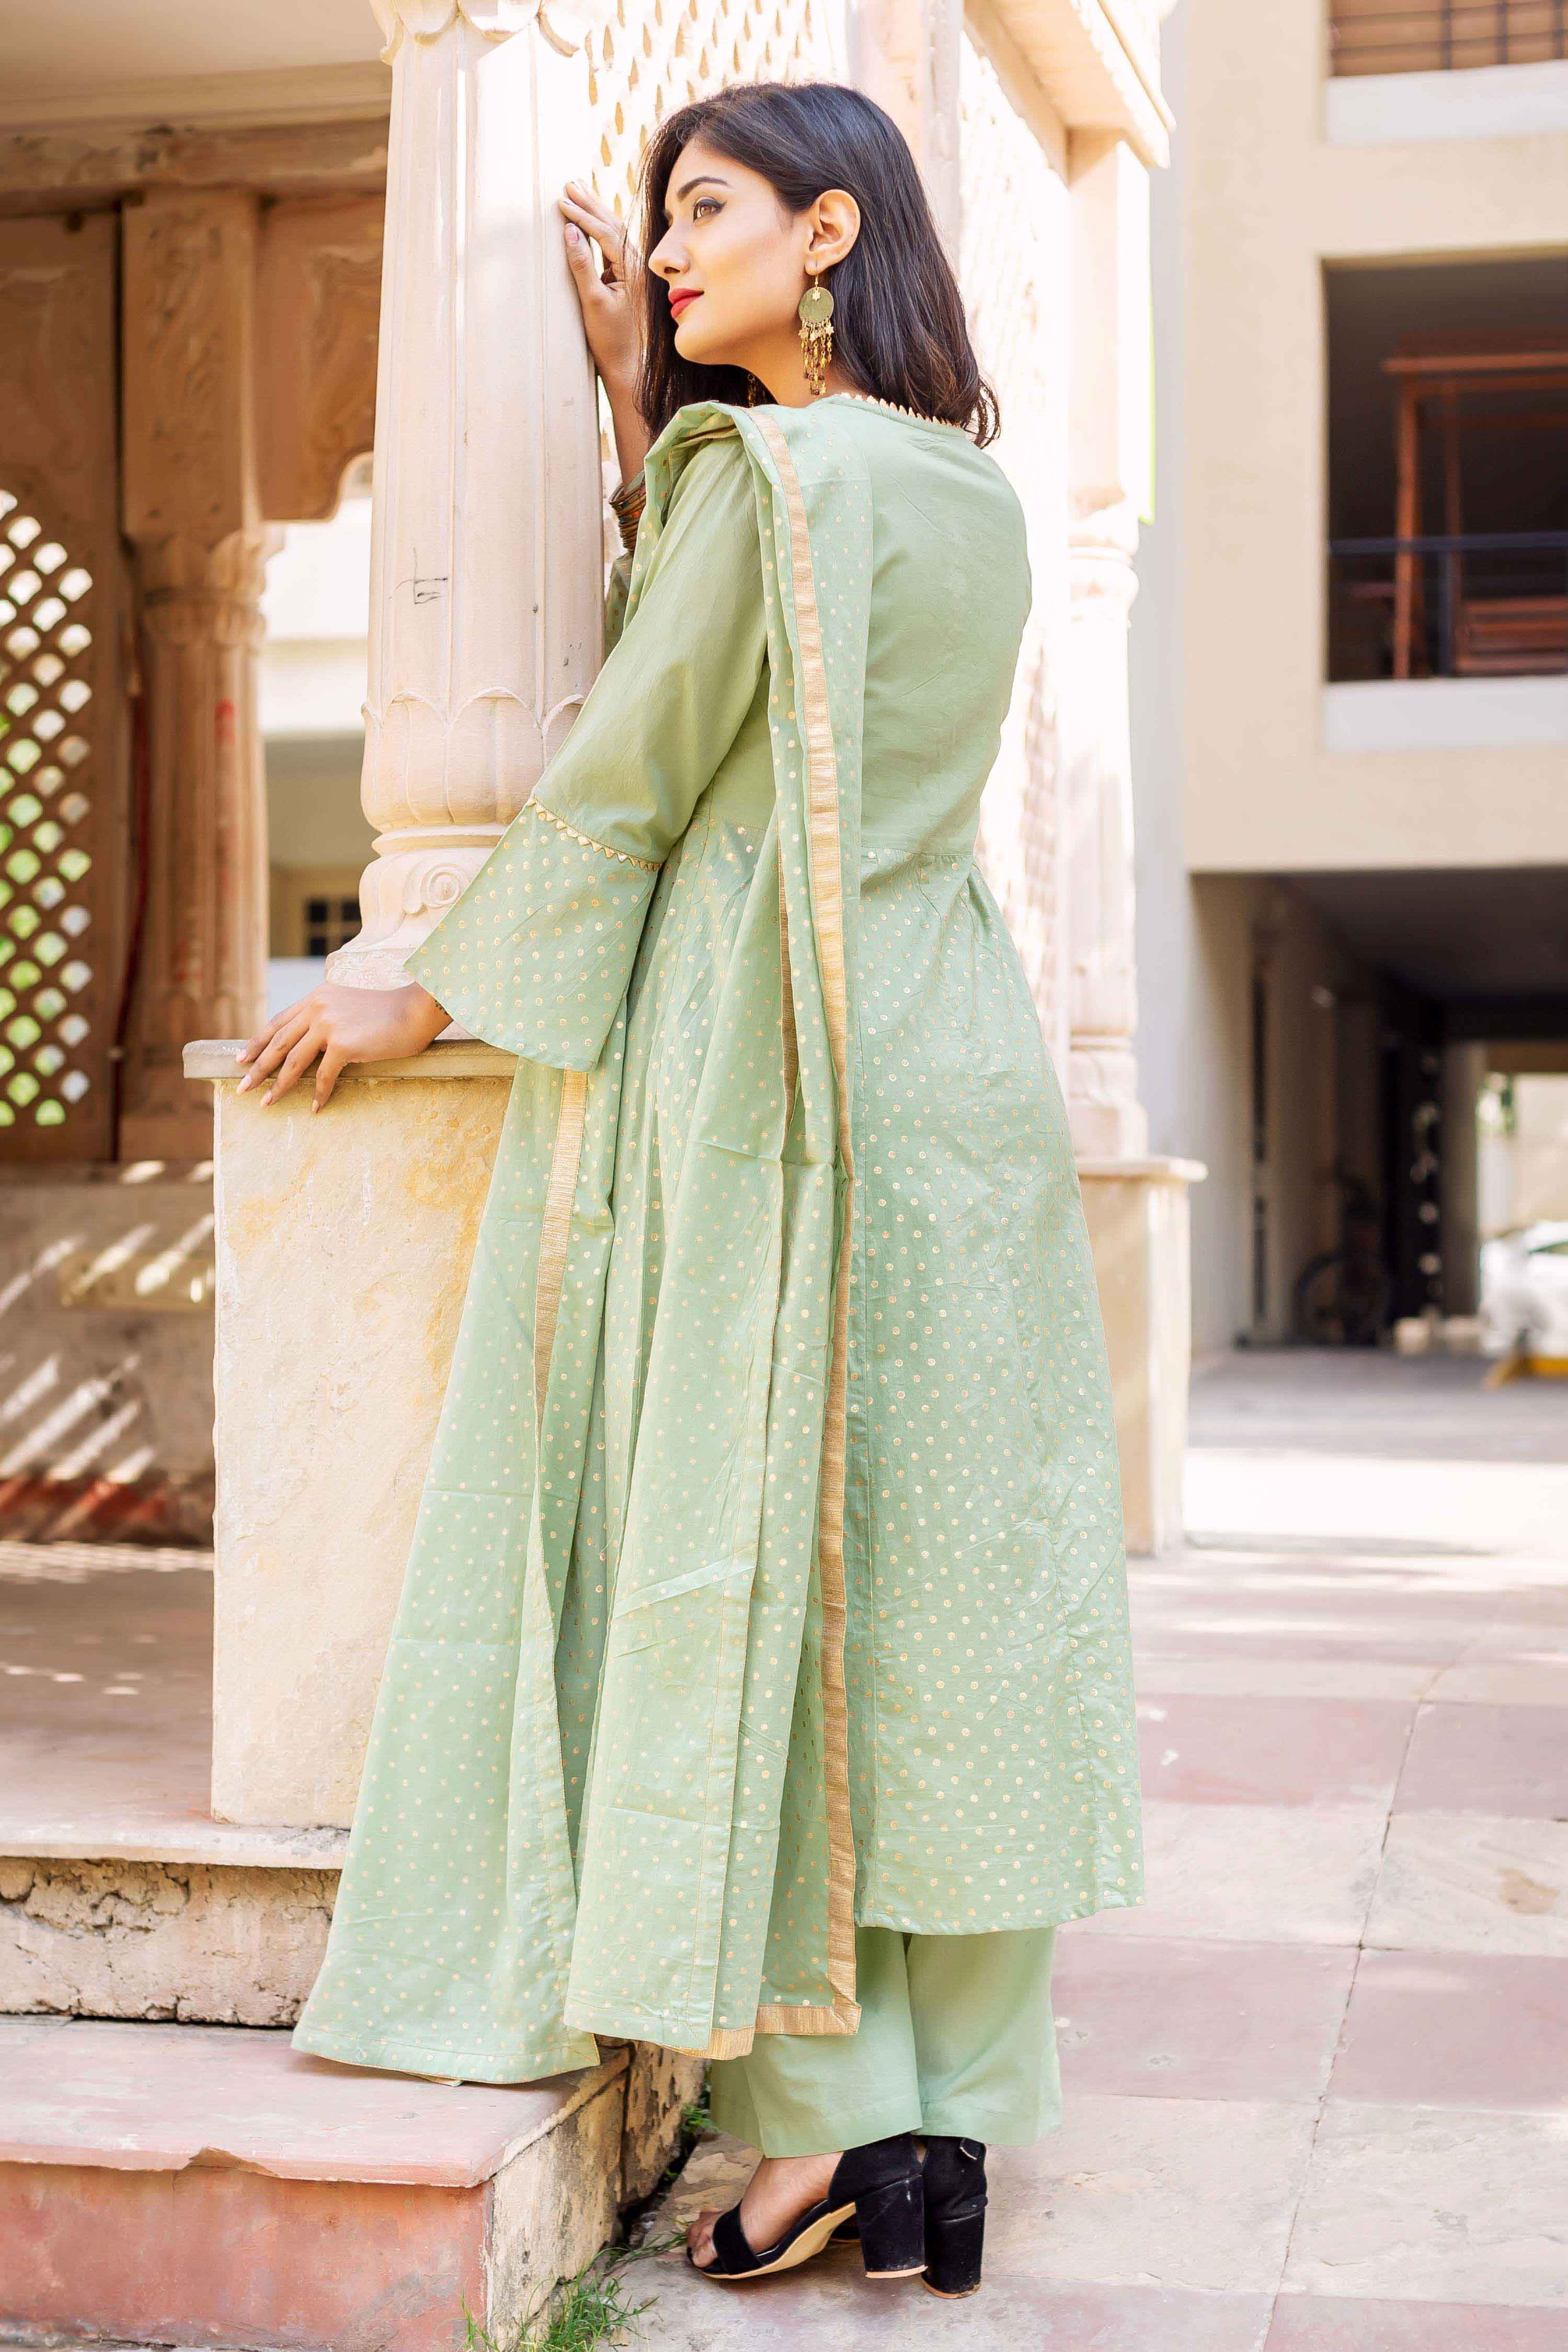 Hand Block Printed Suit Set with Dupatta online for girls at best prices